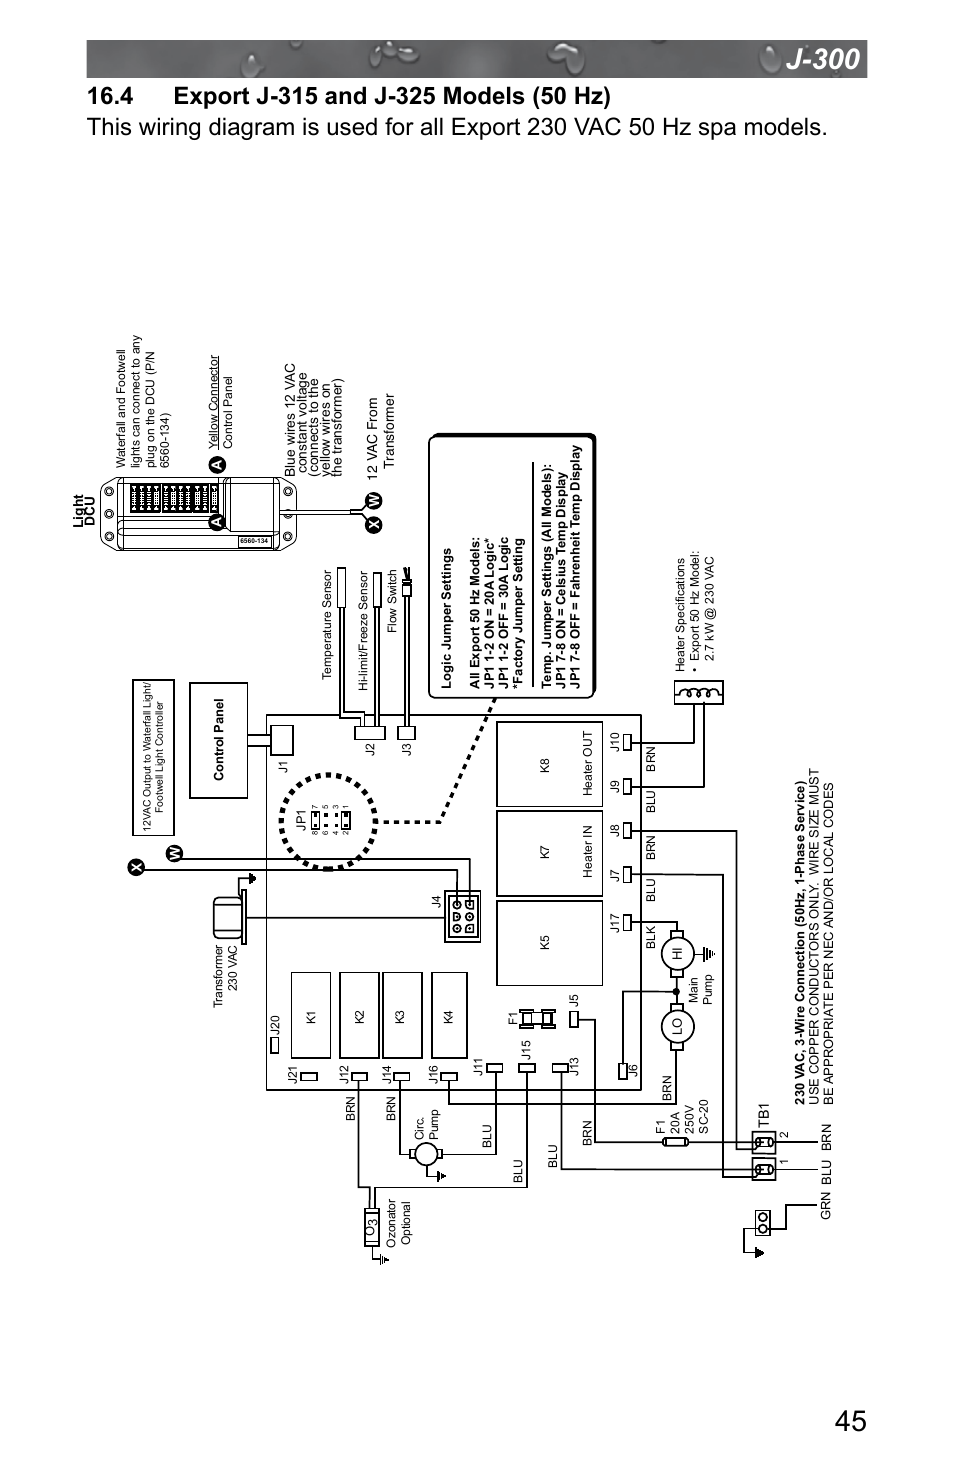 jacuzzi j 315 page49 4 export j 315 and j 325 models (50 hz) jacuzzi j 315 user jacuzzi j 345 wiring diagram at alyssarenee.co